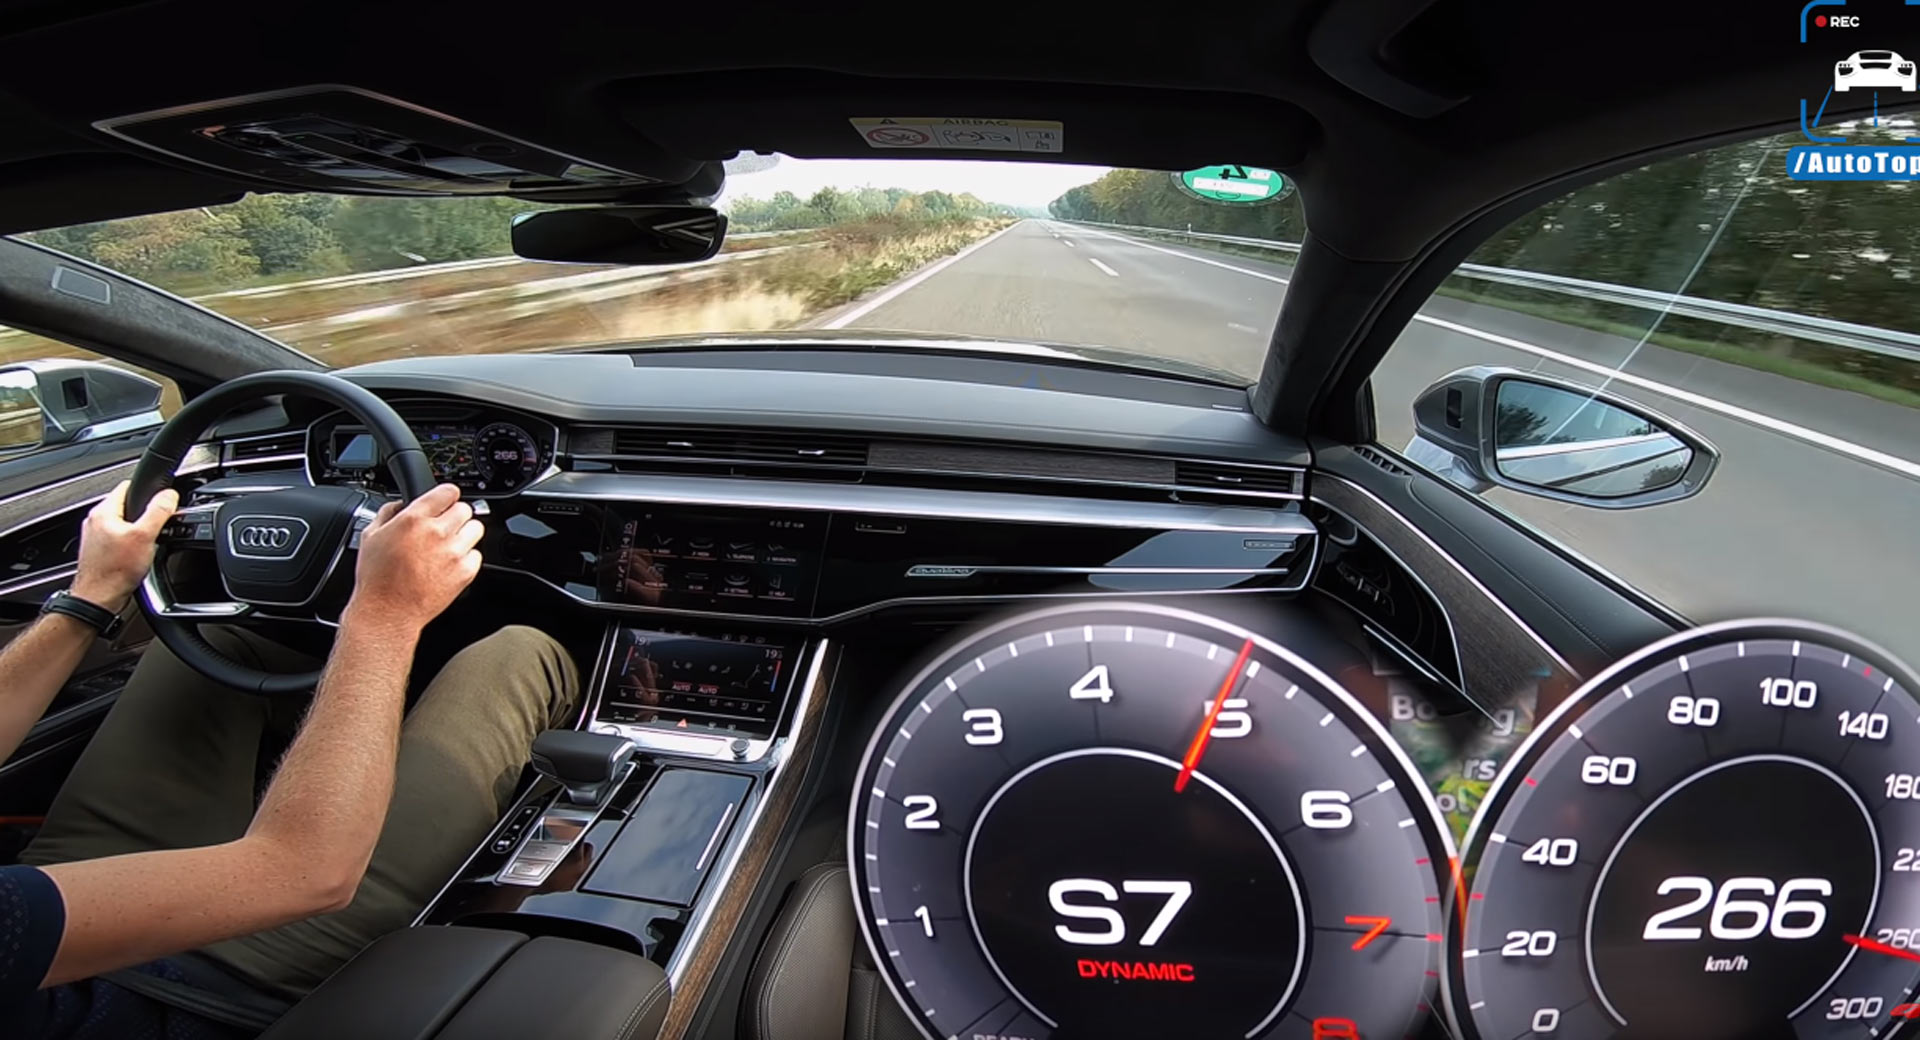 Audi A8 Ride Looks Silky Smooth At 166 MPH On Unrestricted Autobahn